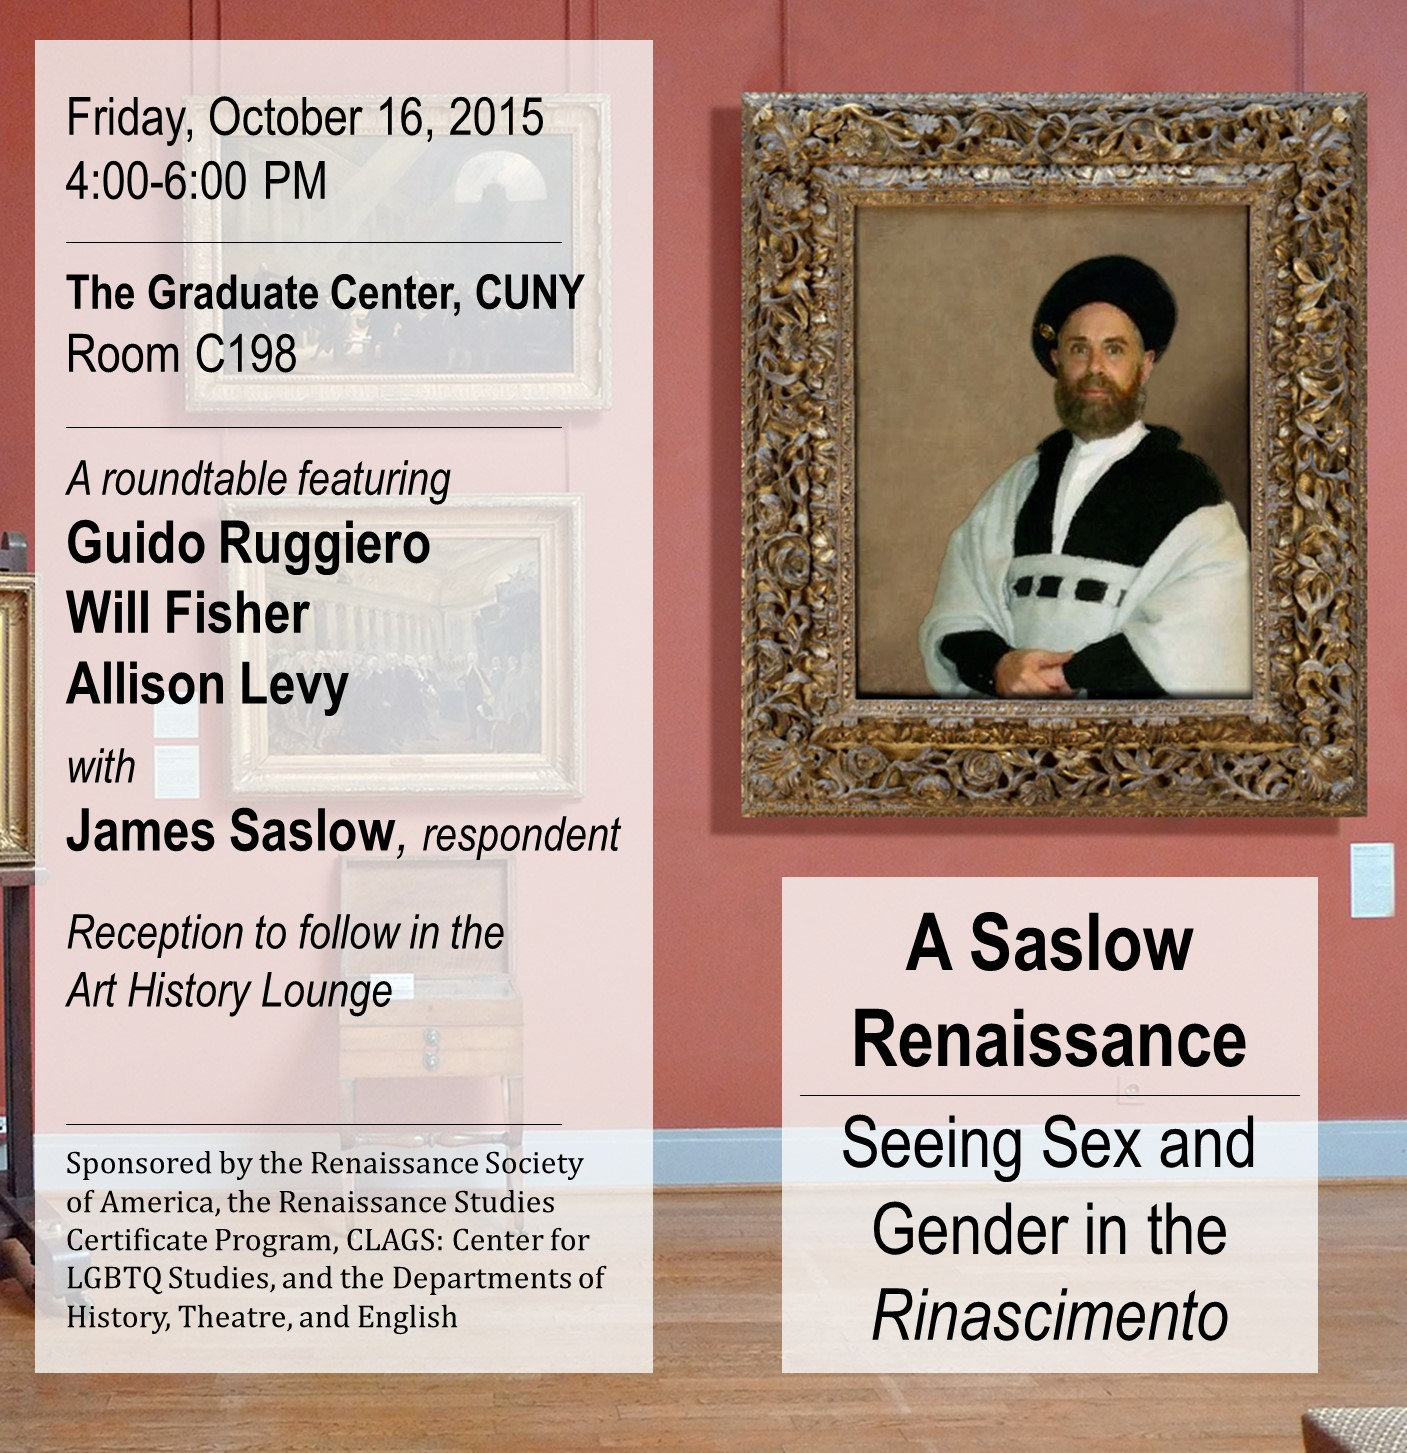 The Graduate Center, CUNY, Room C198 Friday, October 16, 2015 4:00-6:00 PM with a reception to follow in the Art History Lounge The event is sponsored by the RSA, the Renaissance Studies Certificate Program, CLAGS: Center for LGBTQ Studies, and the Departments of Art History, Theatre and English.